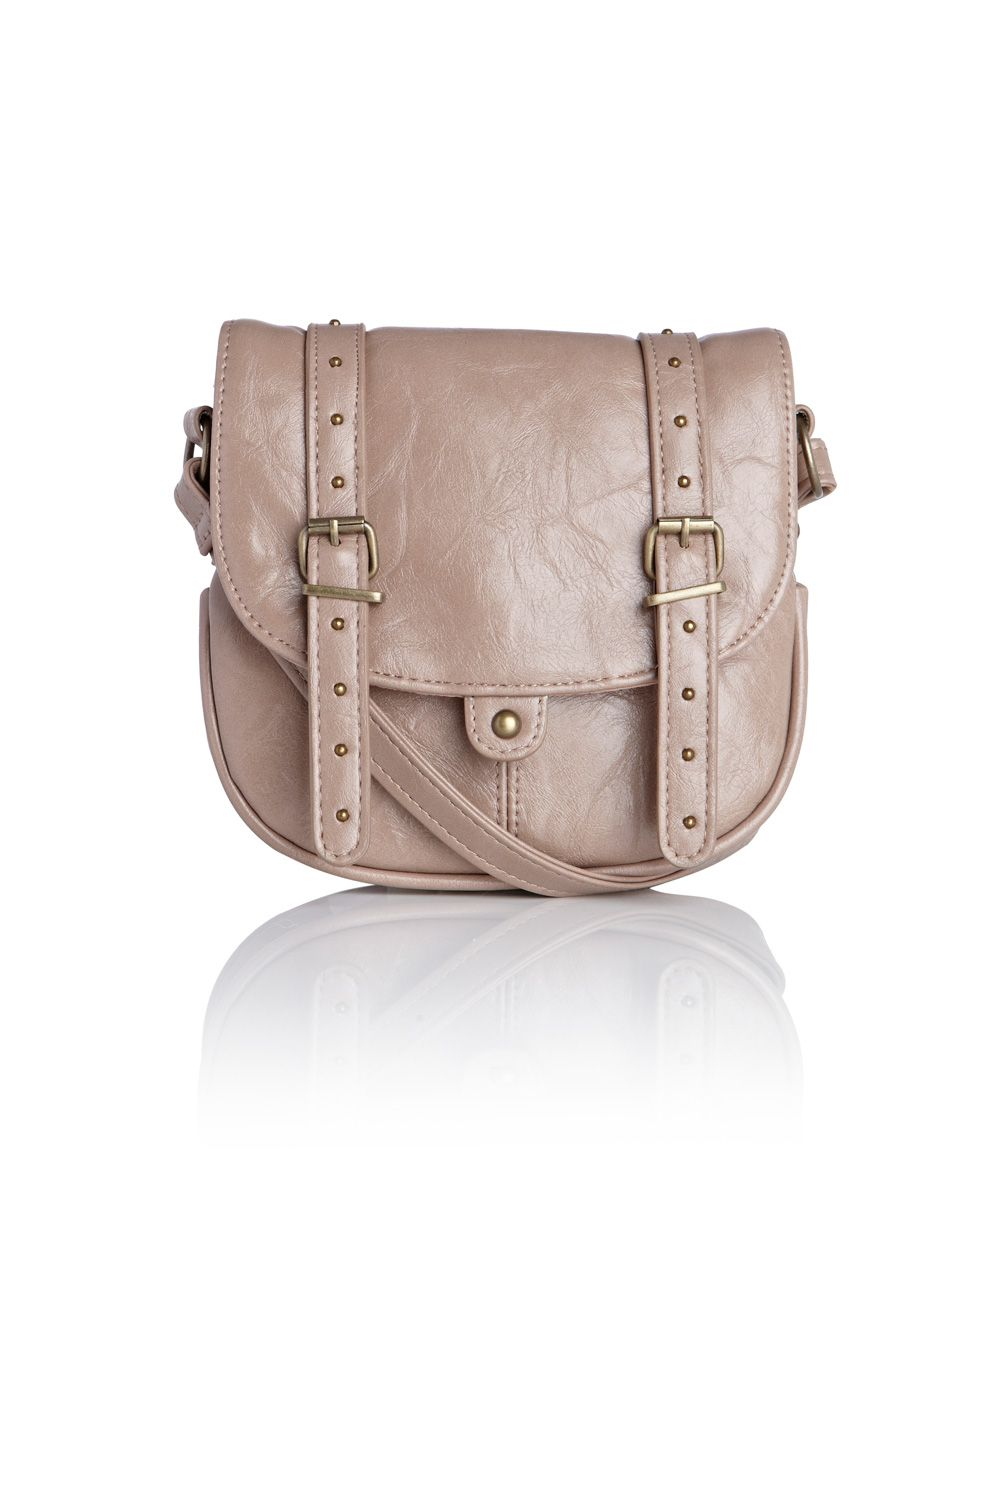 Warehouse Small pu crossbody Brown product image